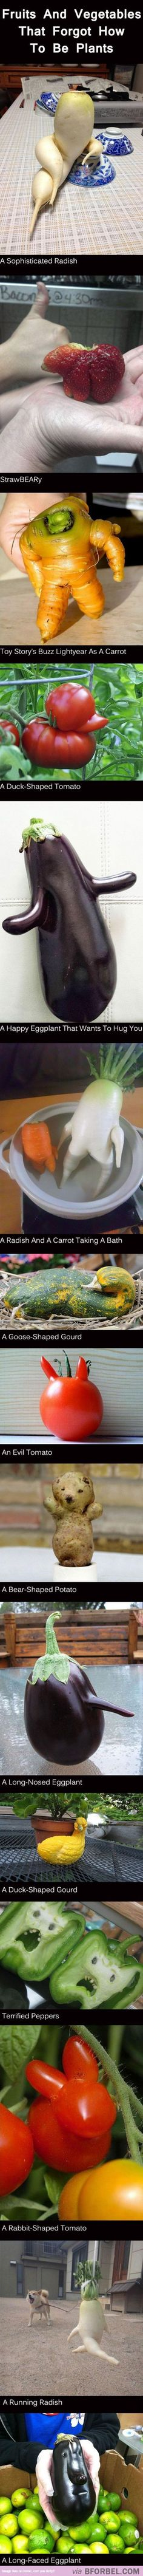 Fruits and vegetables that forgot to be plants